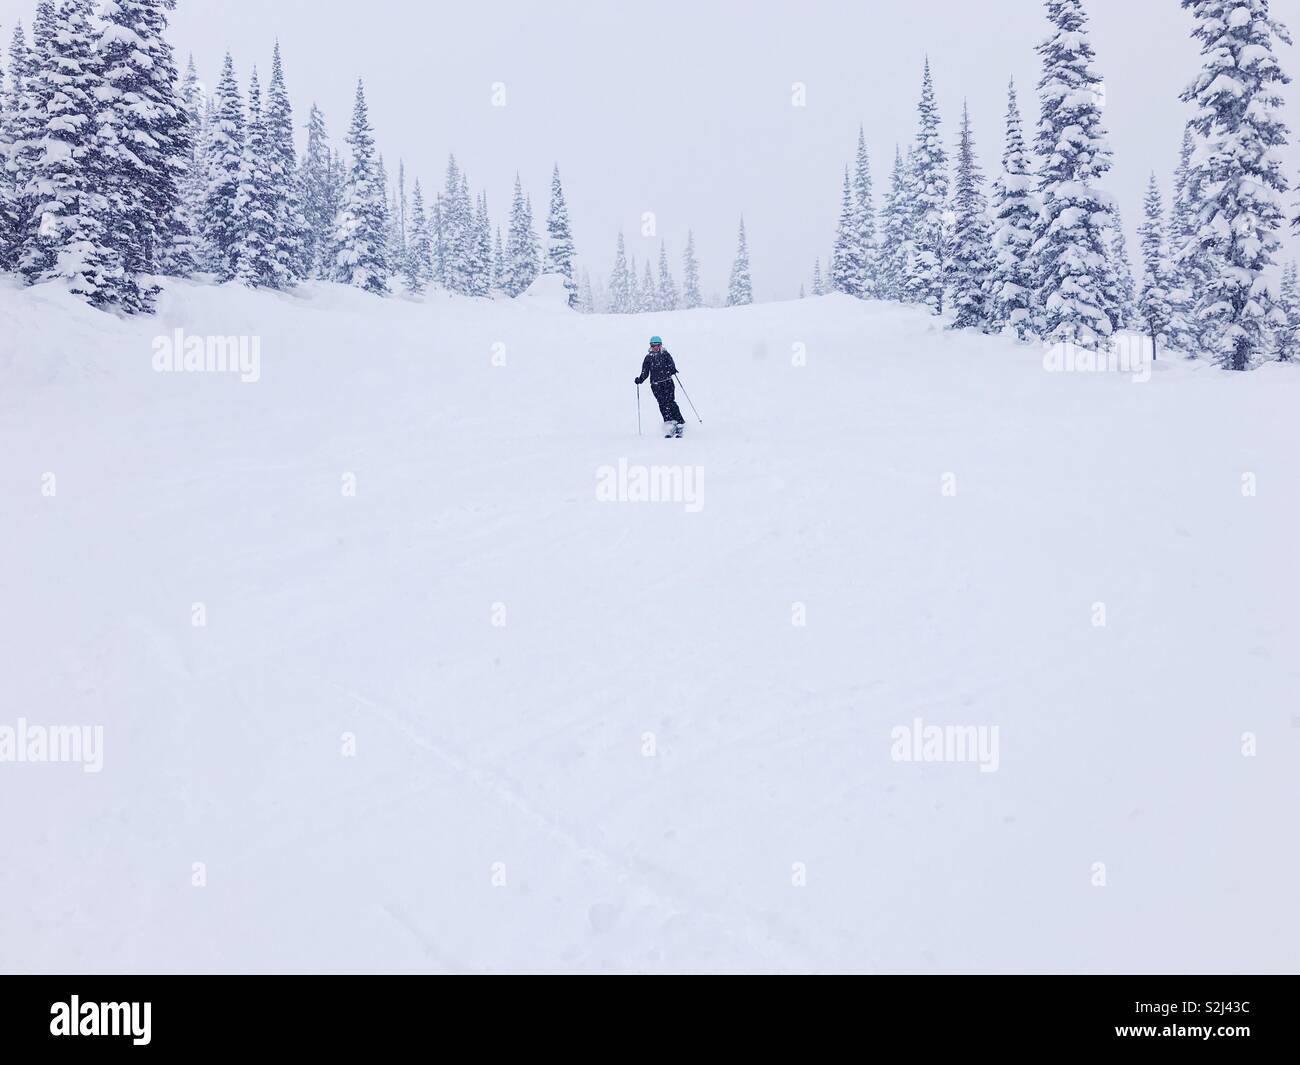 Skier on a quiet ski hill during snow fall. - Stock Image